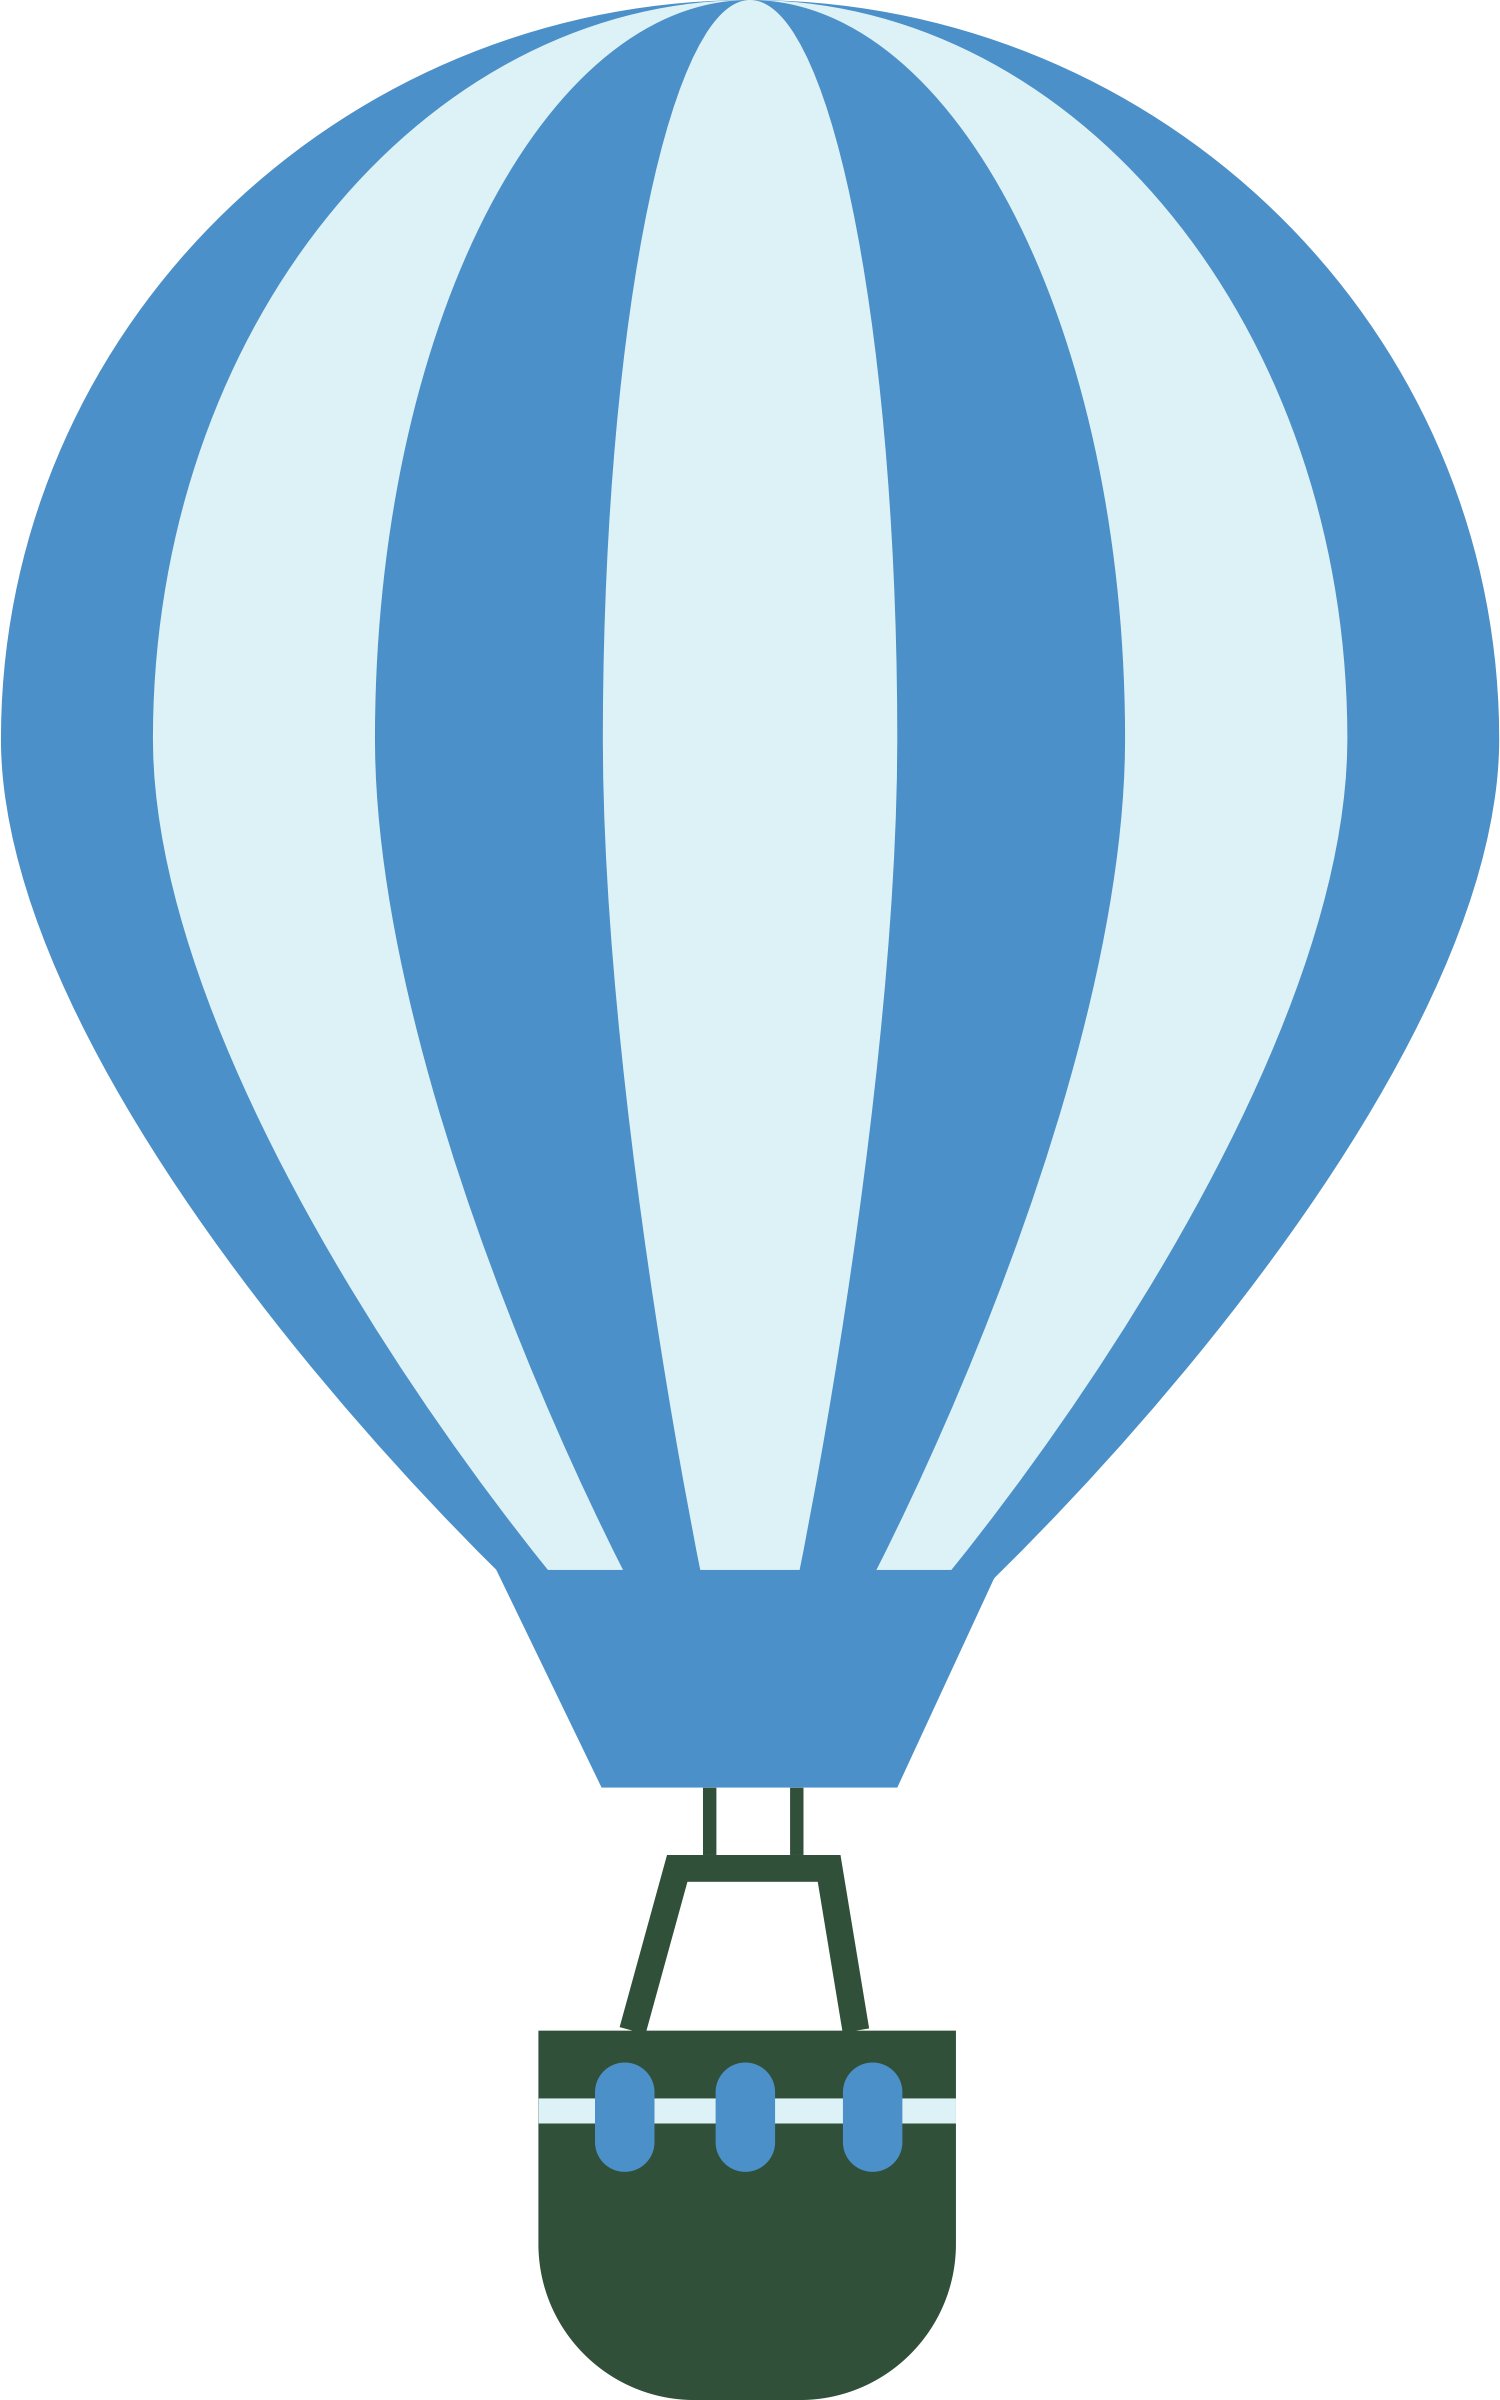 Balloon 4 by Firkin